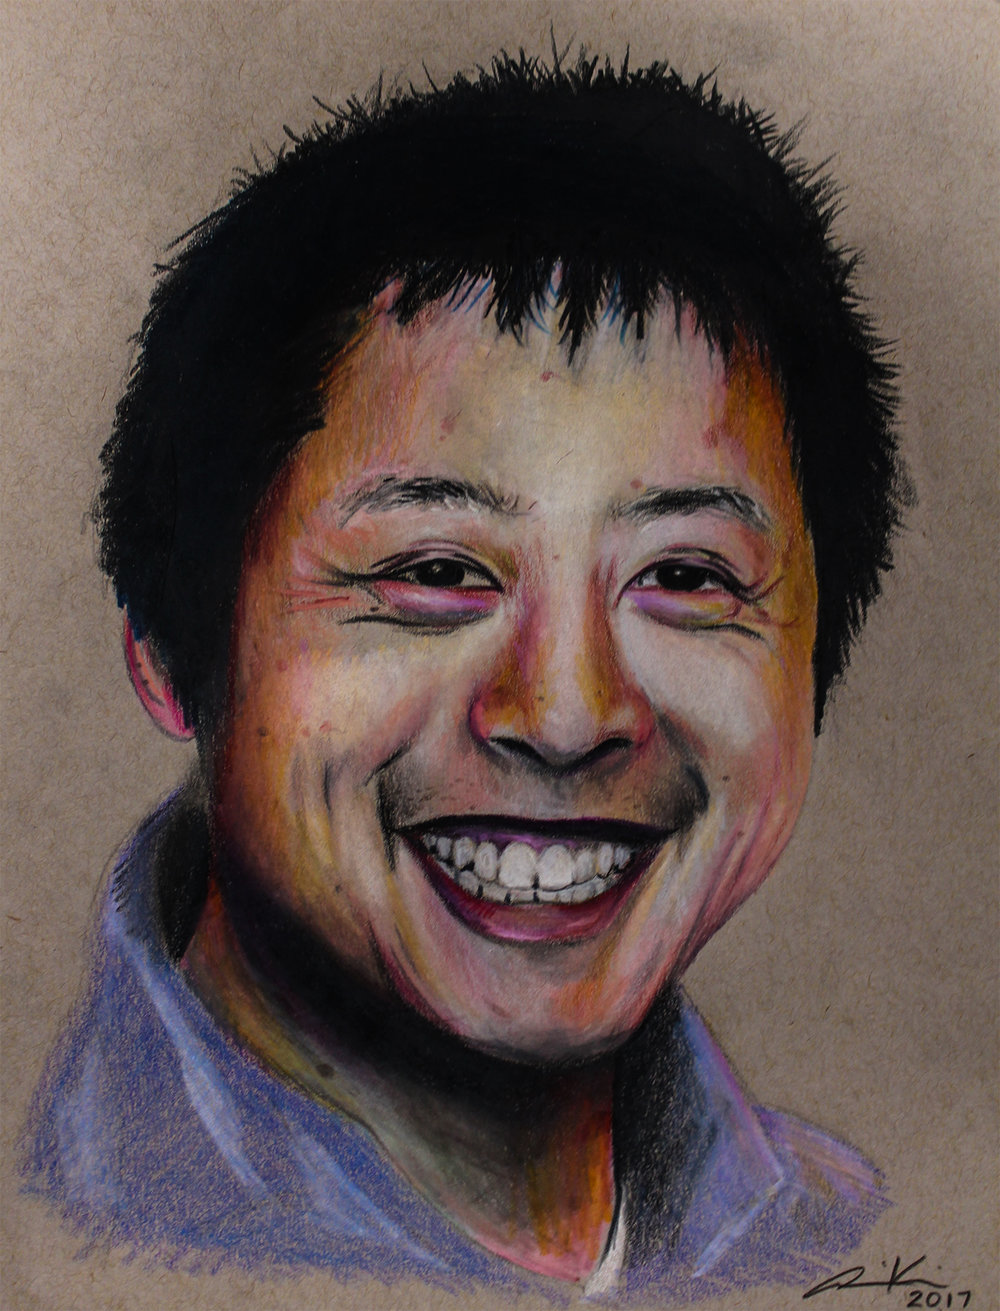 """John,2017, colored pencils on toned paper, 8.5x11"""""""